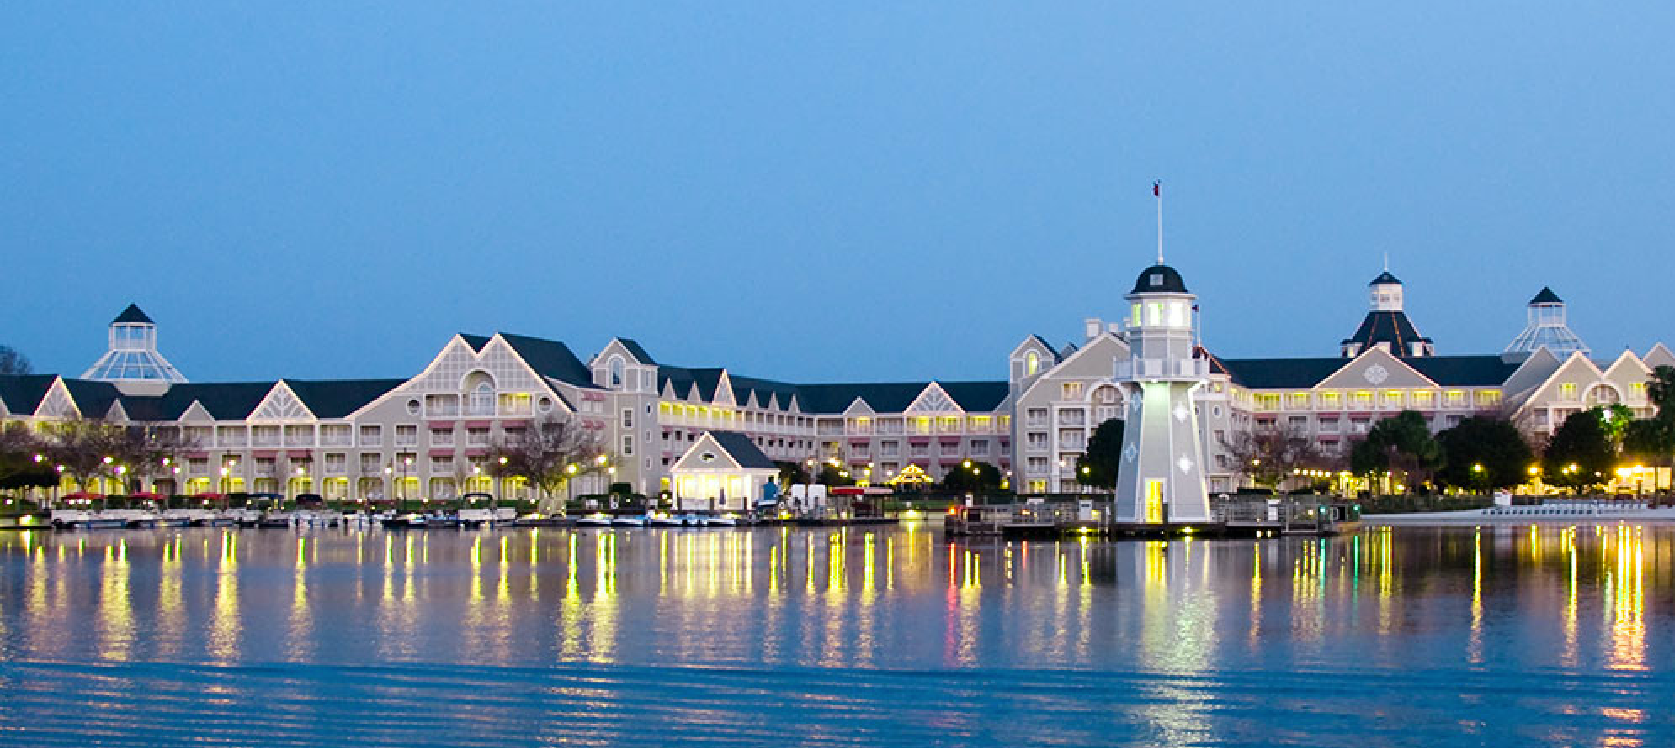 ResortLoop.com Episode 553 – Our Summer Disney Dining Series: Yacht Club